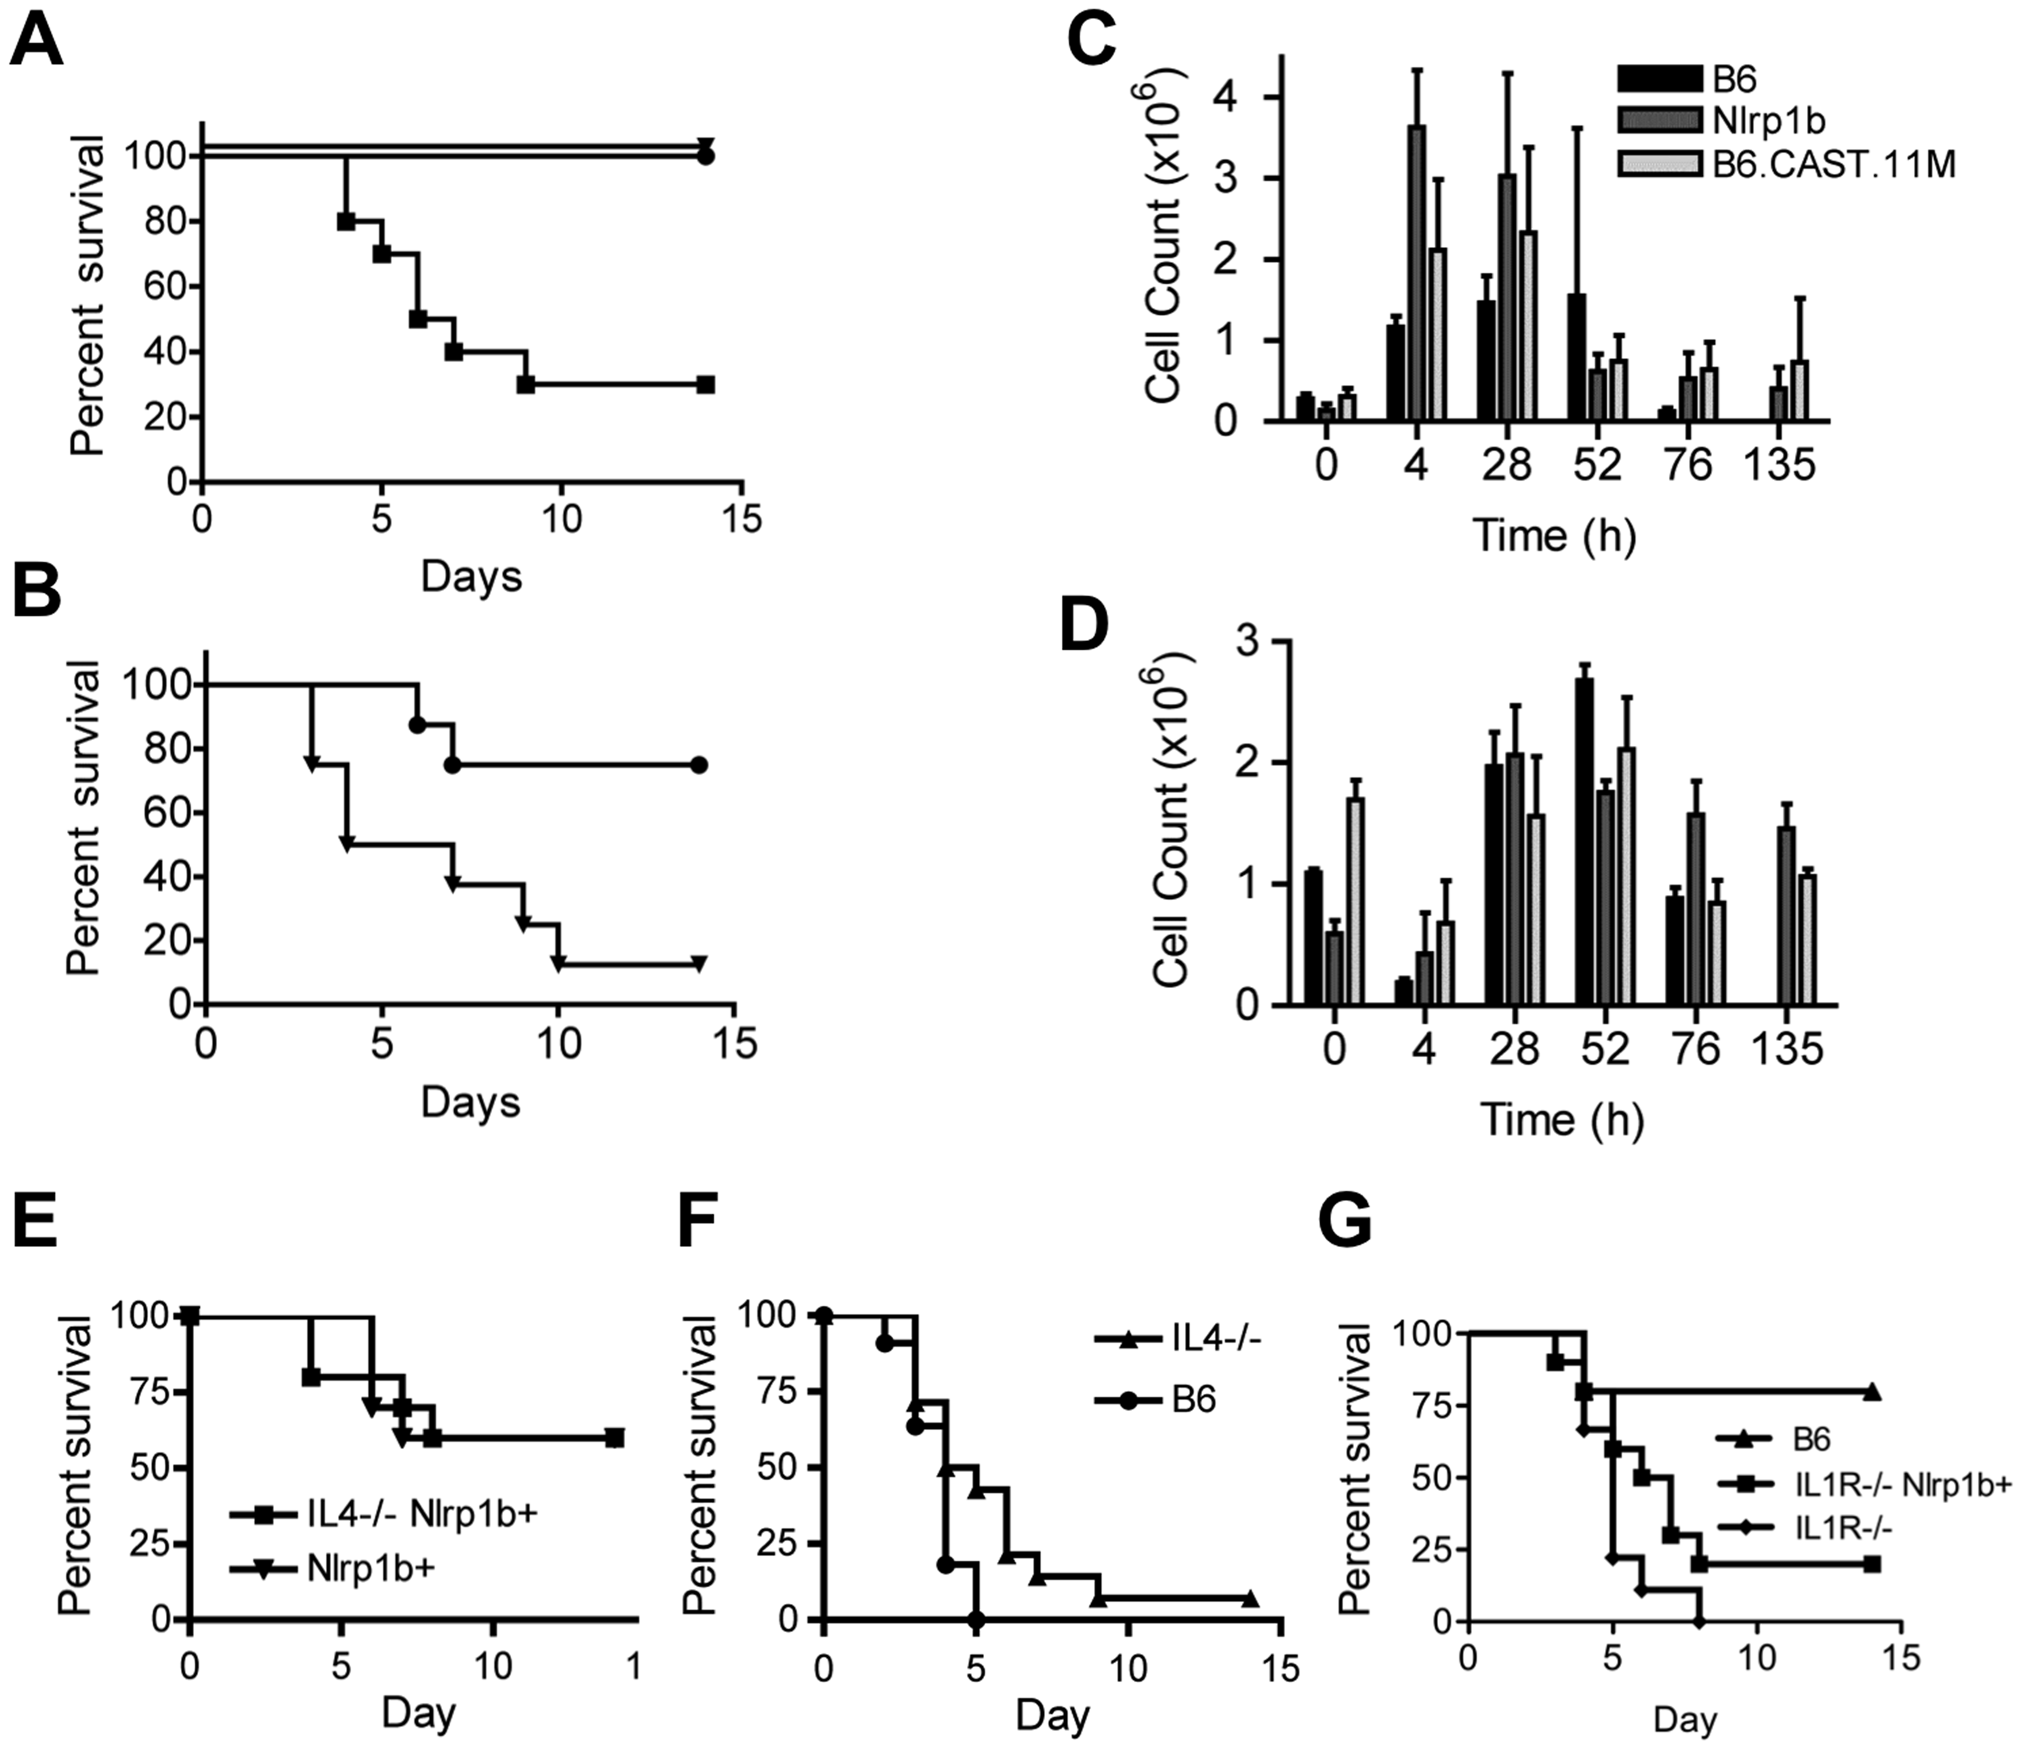 B6.CAST.11M mice display increased resistance to infection by <i>B. anthracis</i> Sterne.